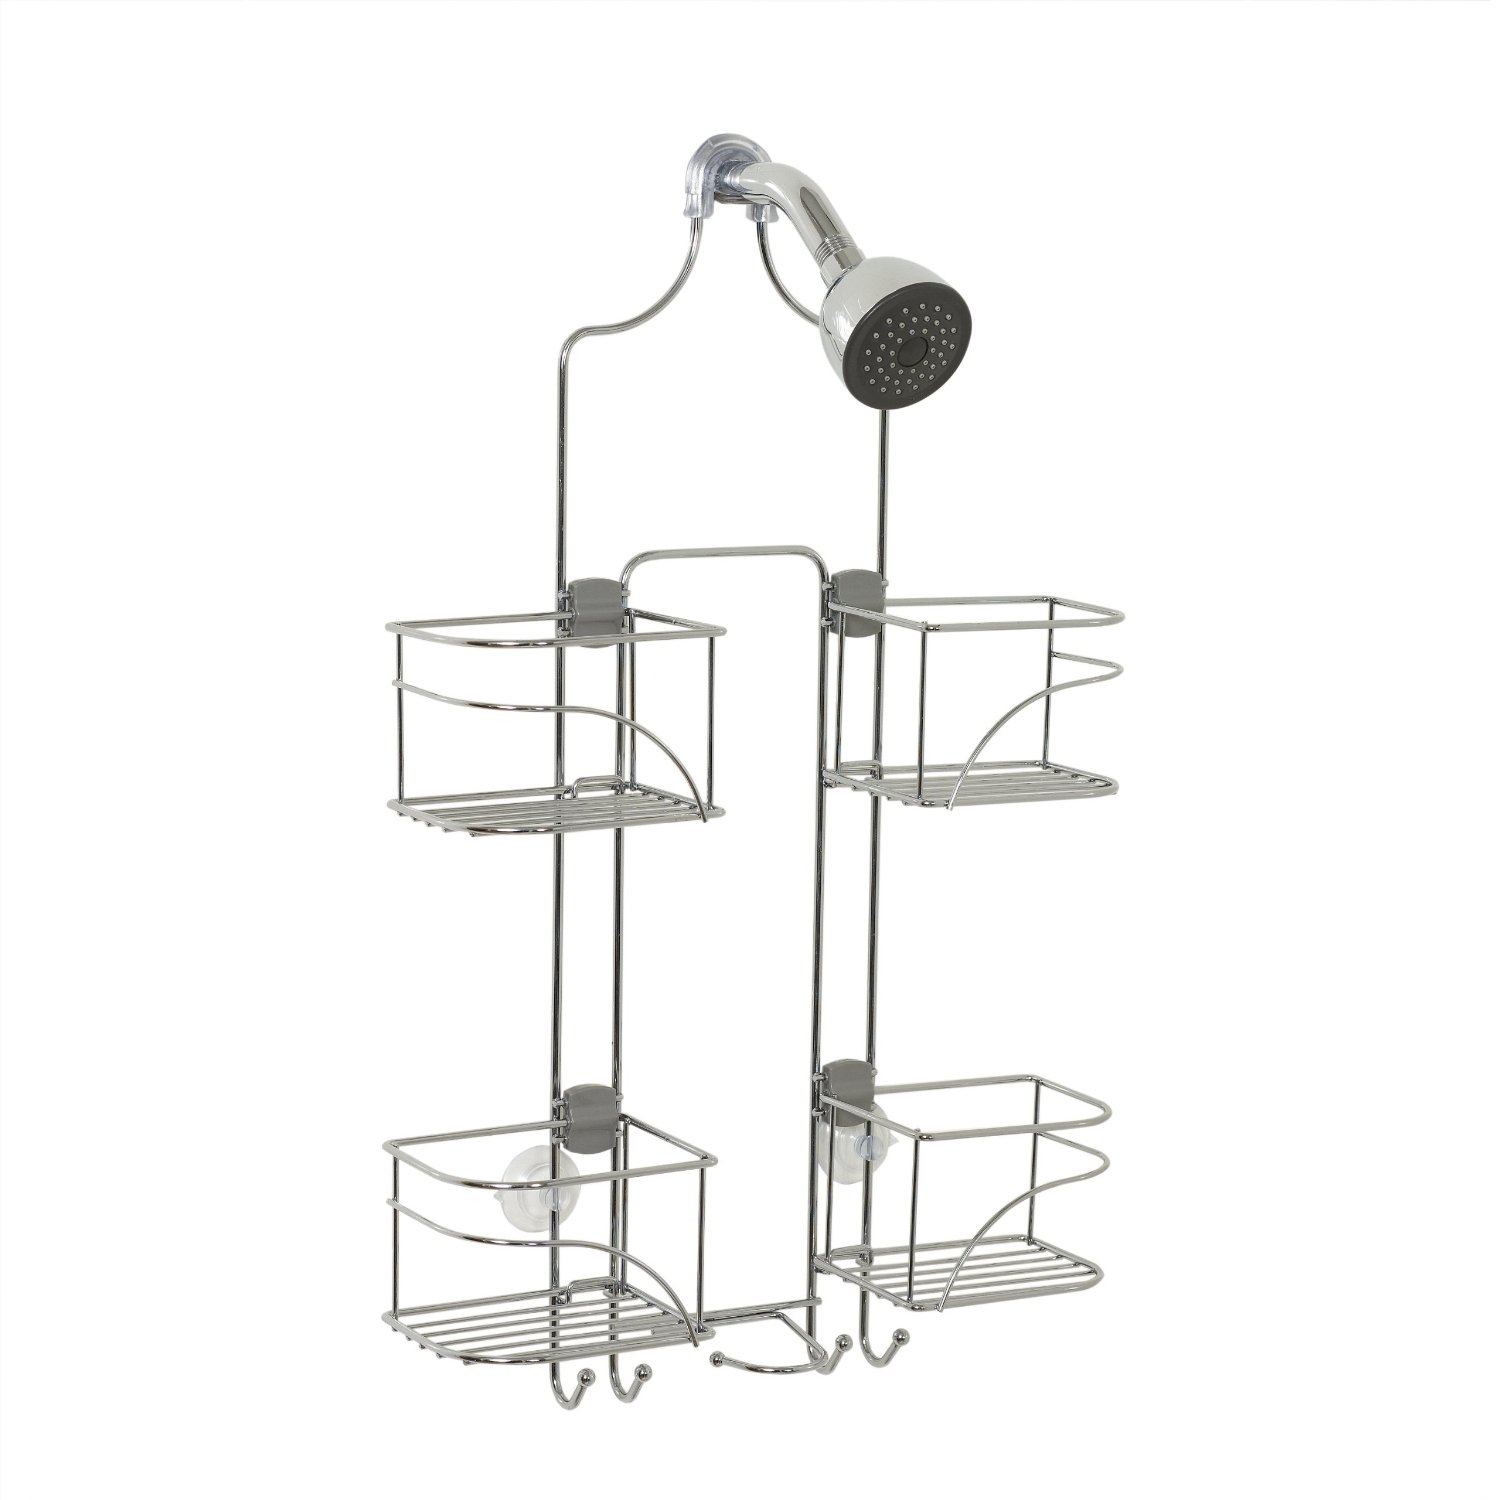 ZPC Zenith Over-the-Showerhead Caddy